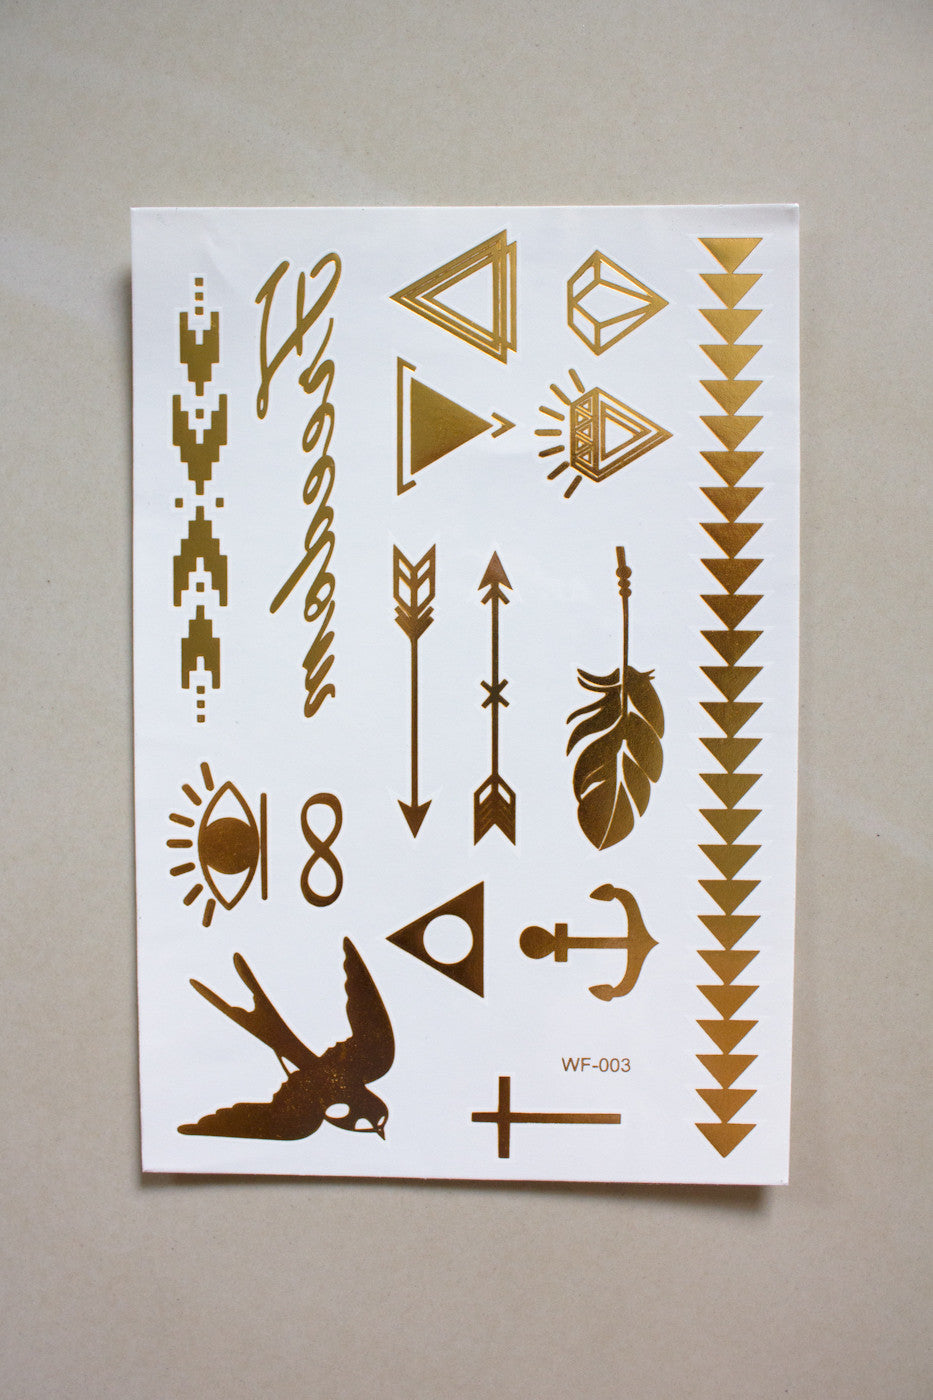 Metallic Temporary Tattoos - liberty - Peep Boutique - www.peepb.com - 15